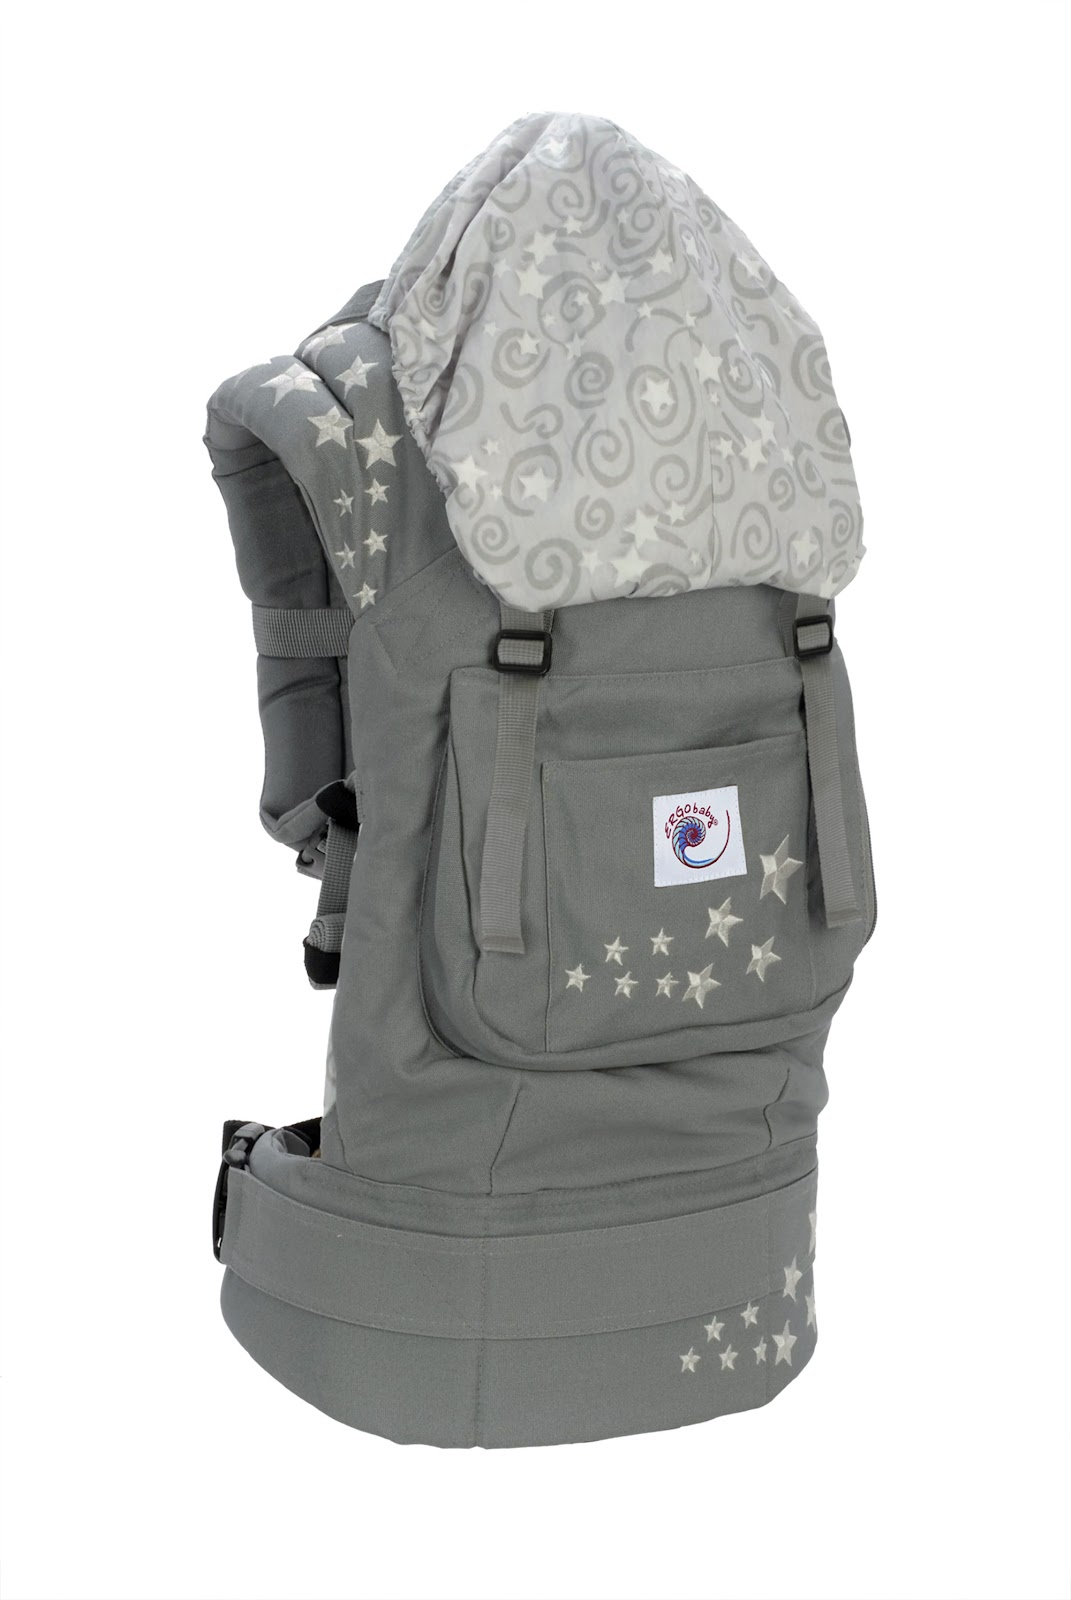 Mommygiay Carry Me With Love Ergobaby Carrier Lifestyle